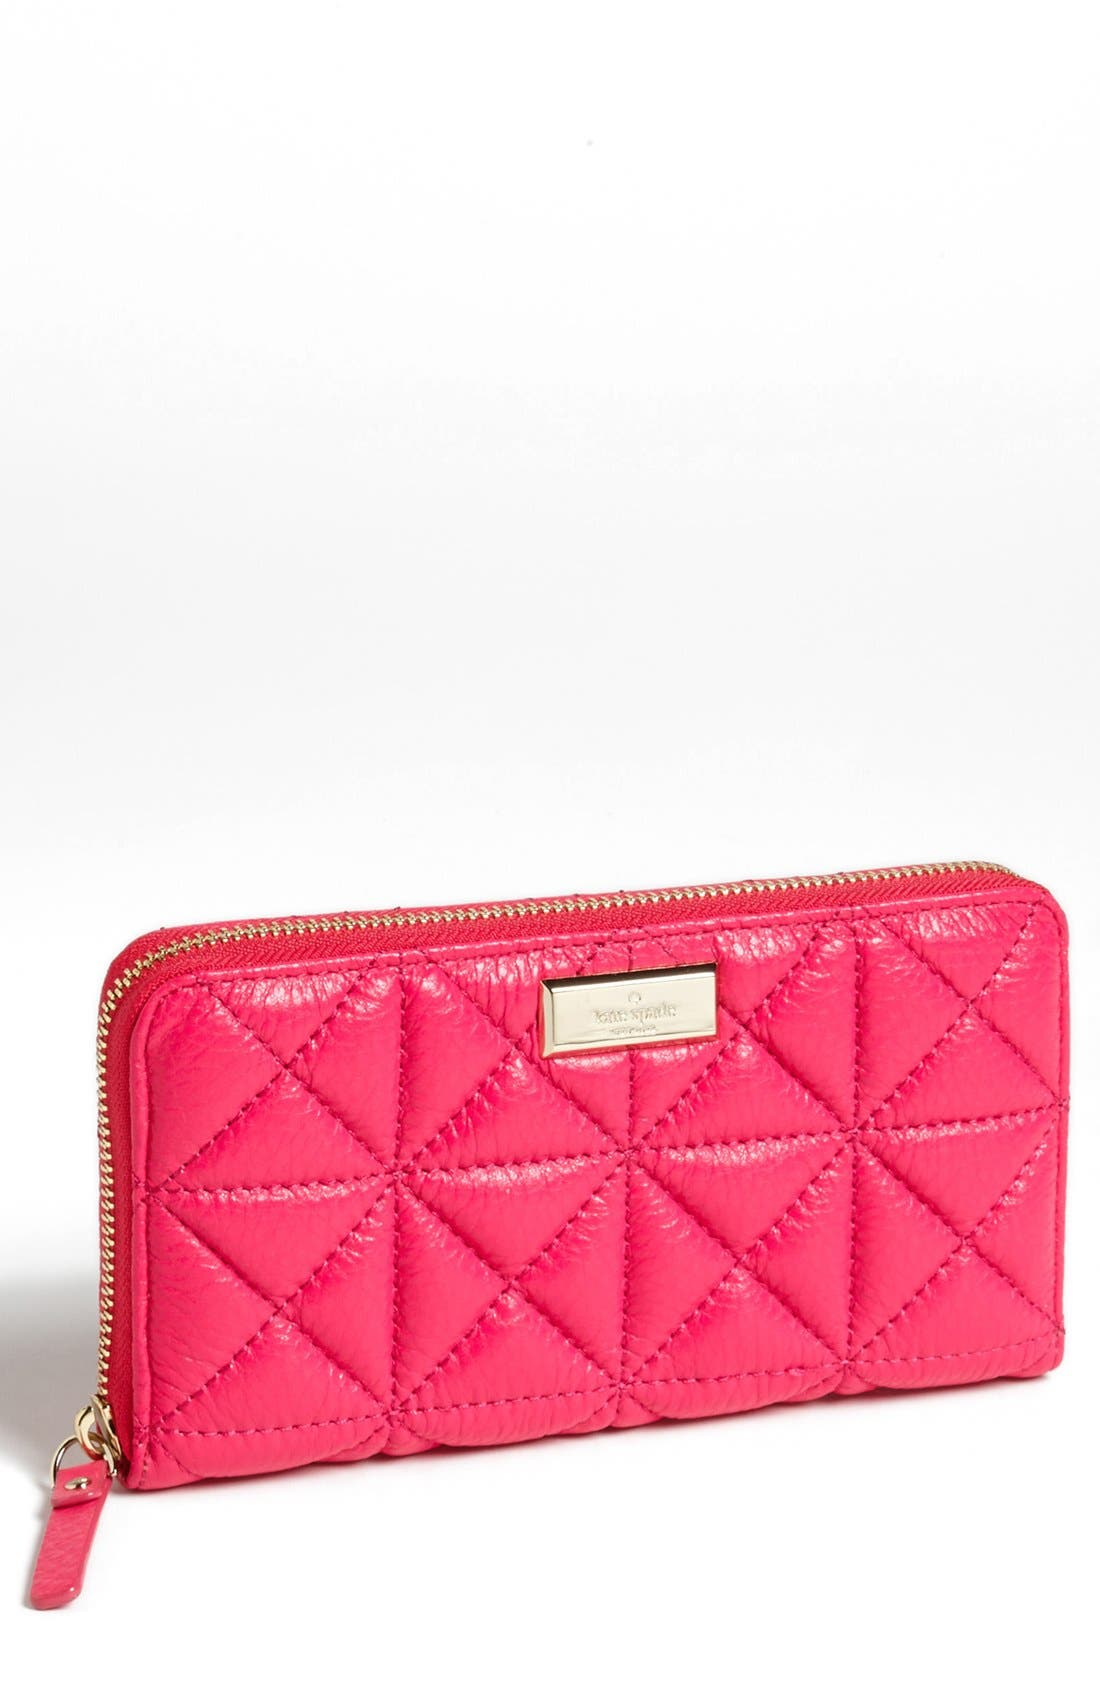 Main Image - kate spade new york 'sedgwick place - lacey' zip around wallet